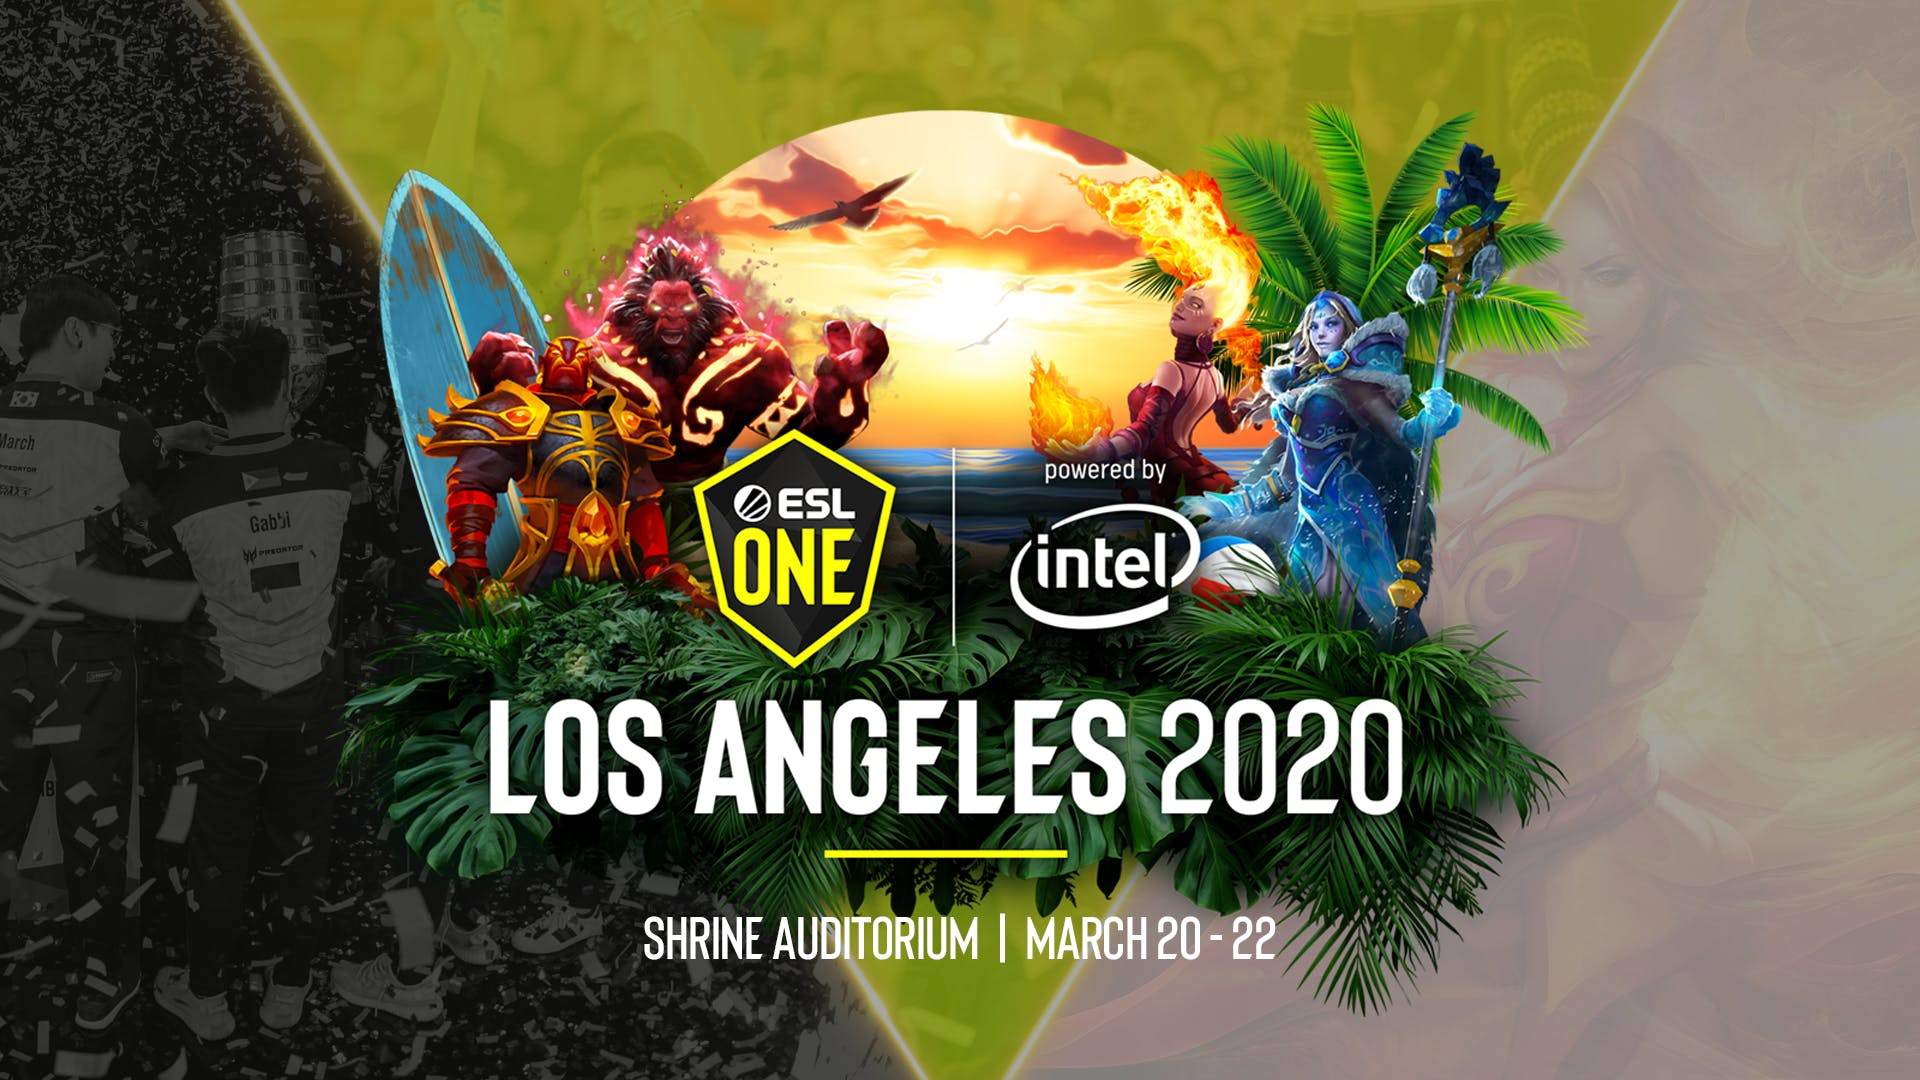 ESL One Los Angeles 2020 Dota 2 Tournament